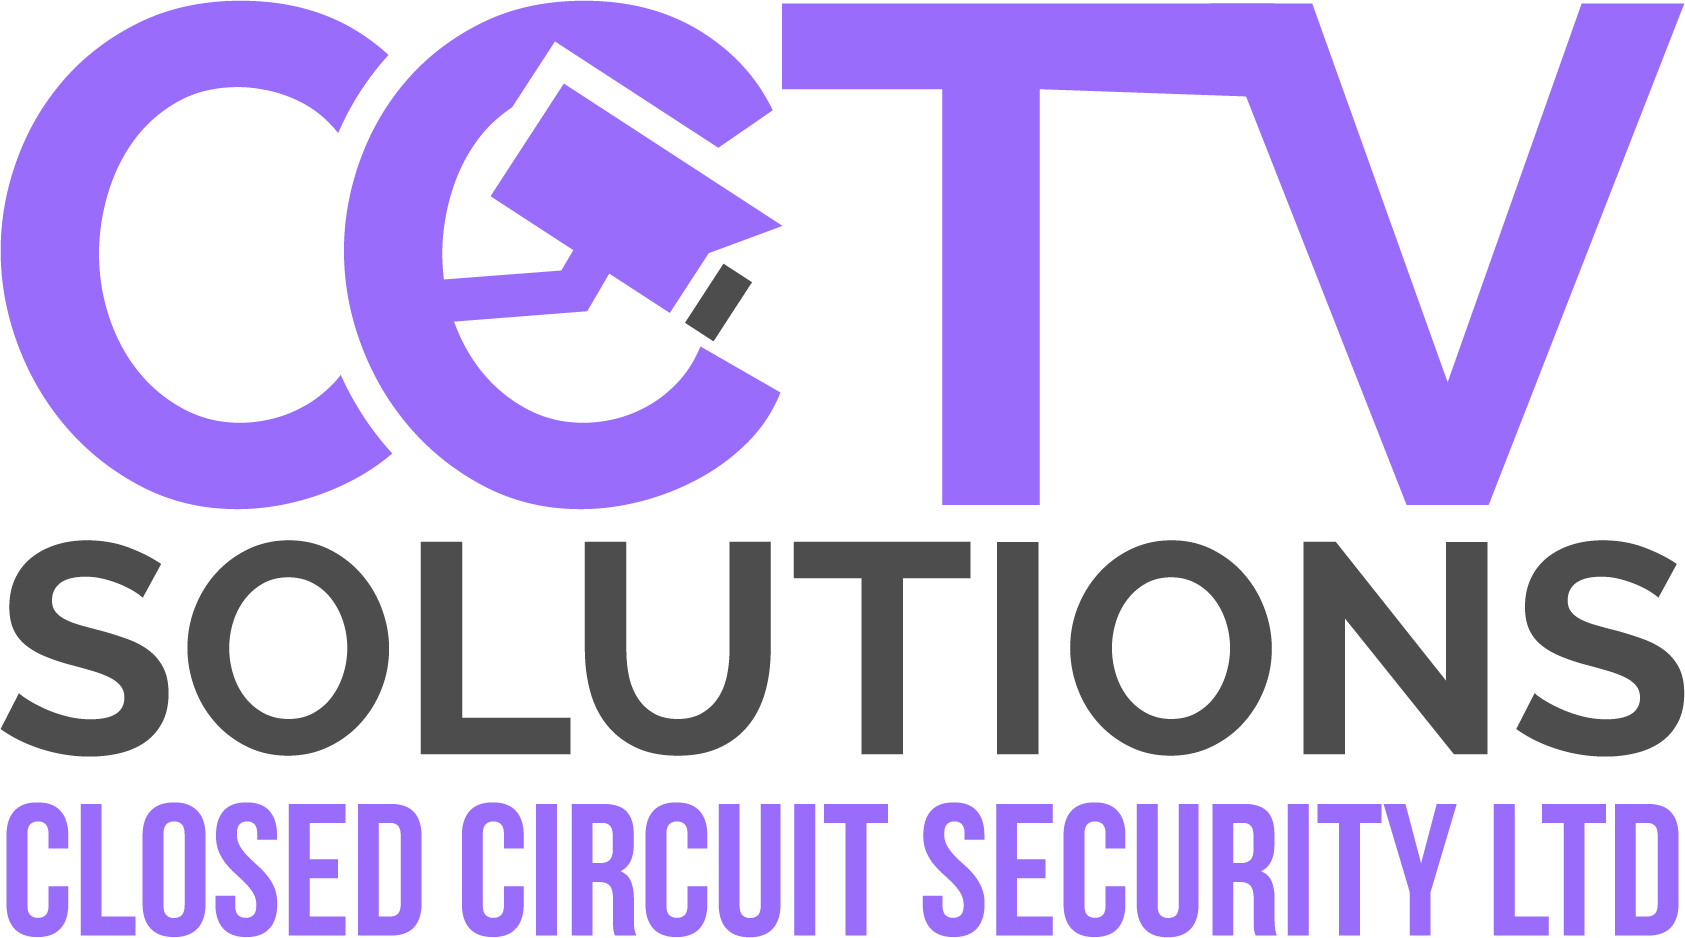 CCTV Solutions - Closed Circuit Security Ltd